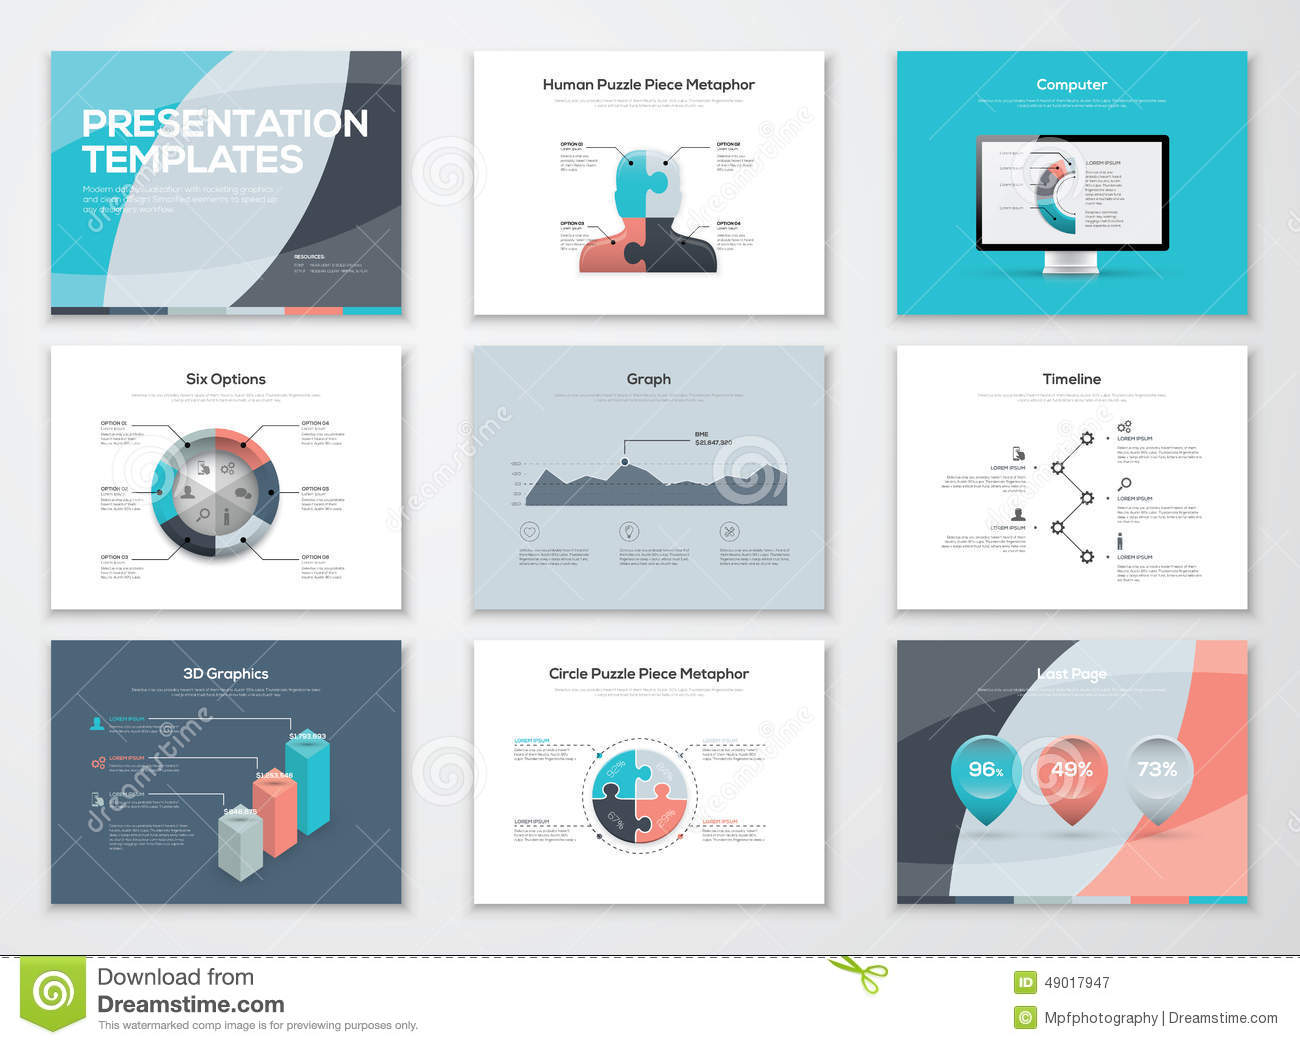 Business presentation templates and infographic vector elements business presentation templates and infographic vector elements accmission Choice Image